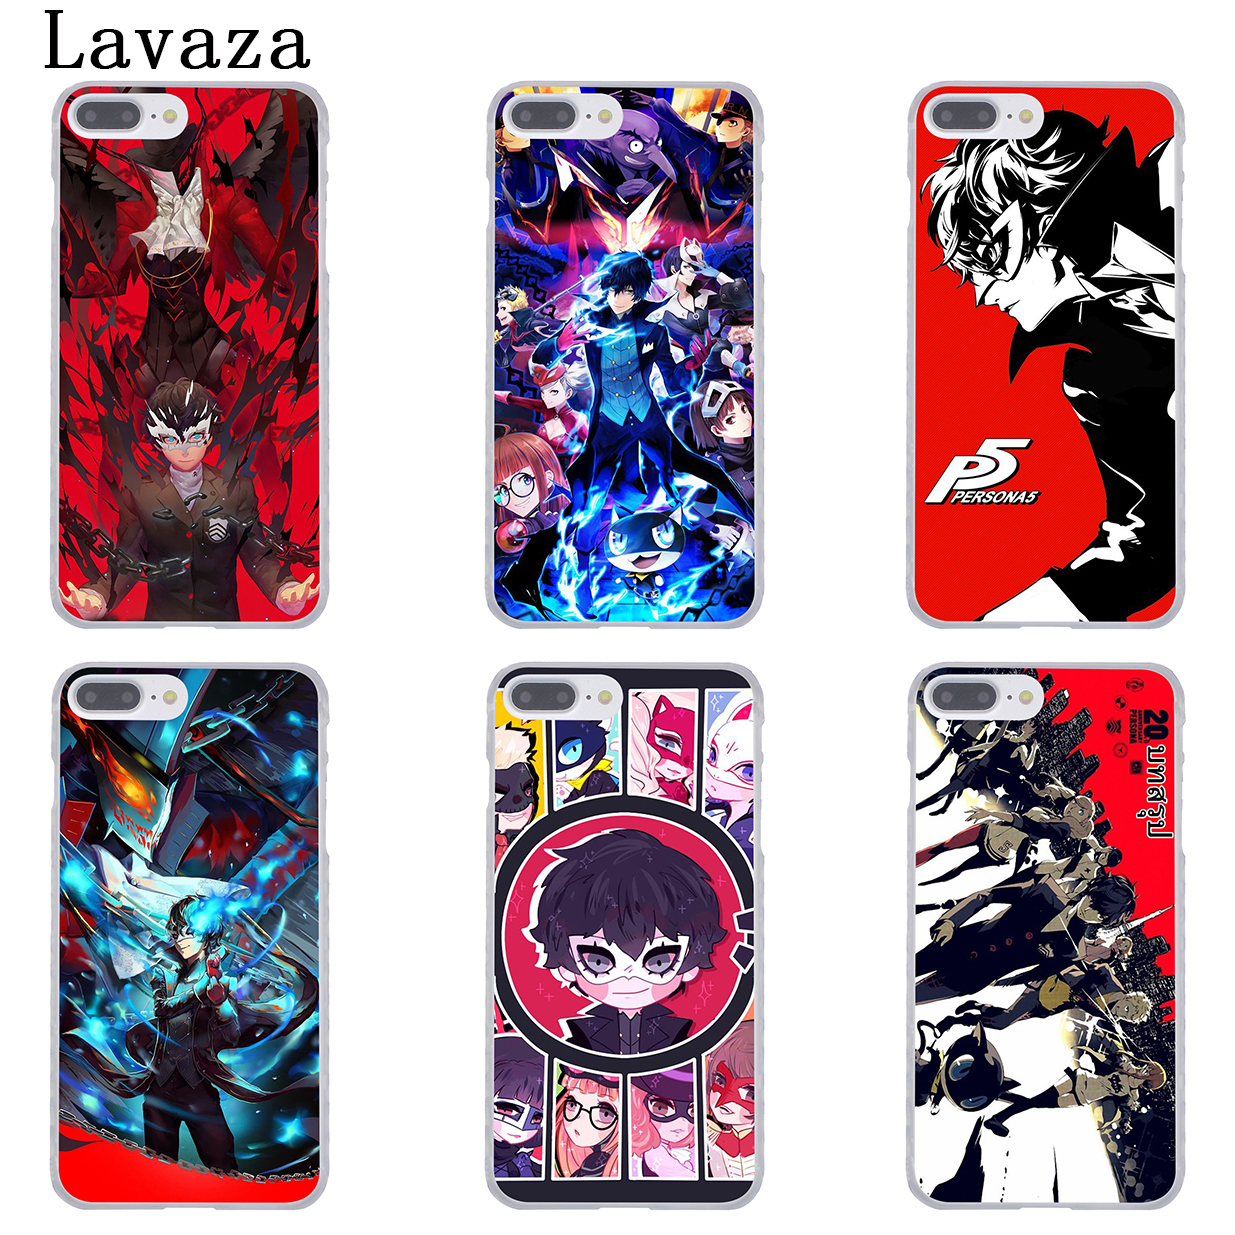 Lavaza p5 P Persona 5 Hard Coque Shell Phone Case for Apple iPhone X 10 8 7 6 6s Plus 5 5S SE 5C 4 4S Cover